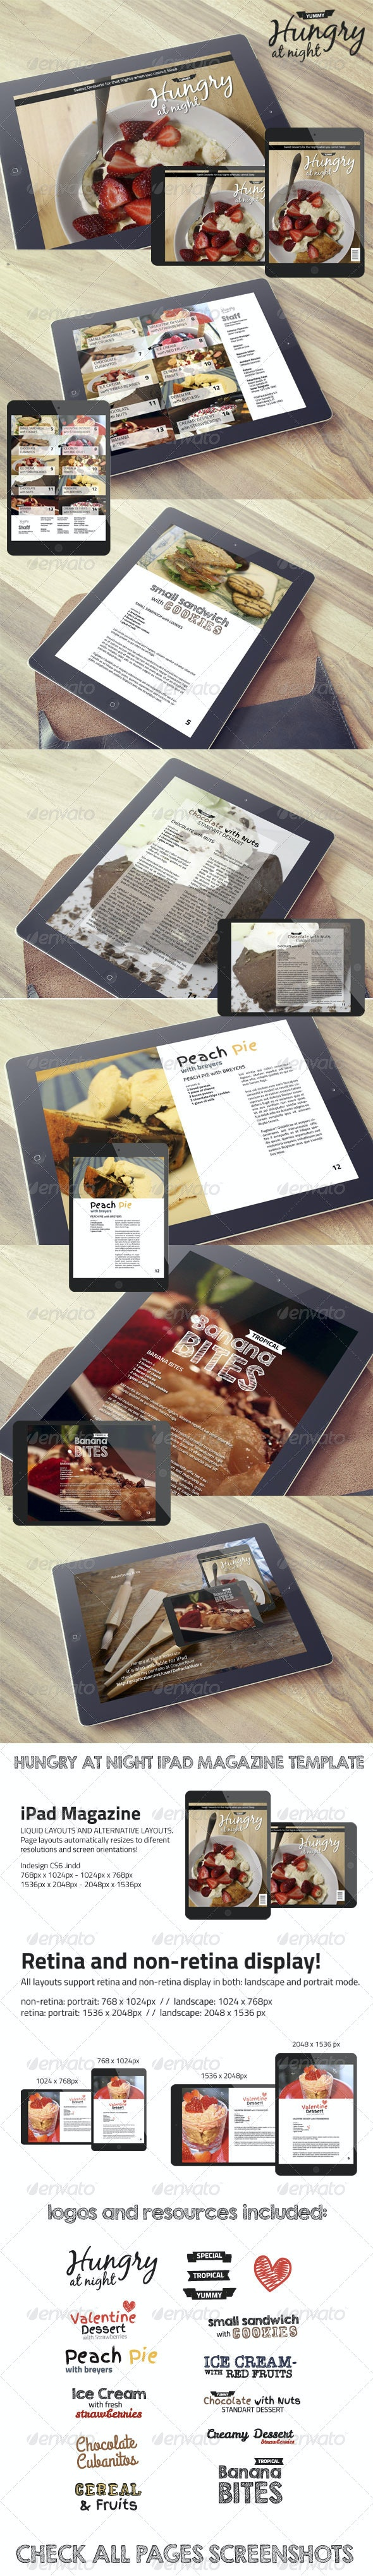 Hungry At Night iPad Magazine Template  - Digital Magazines ePublishing